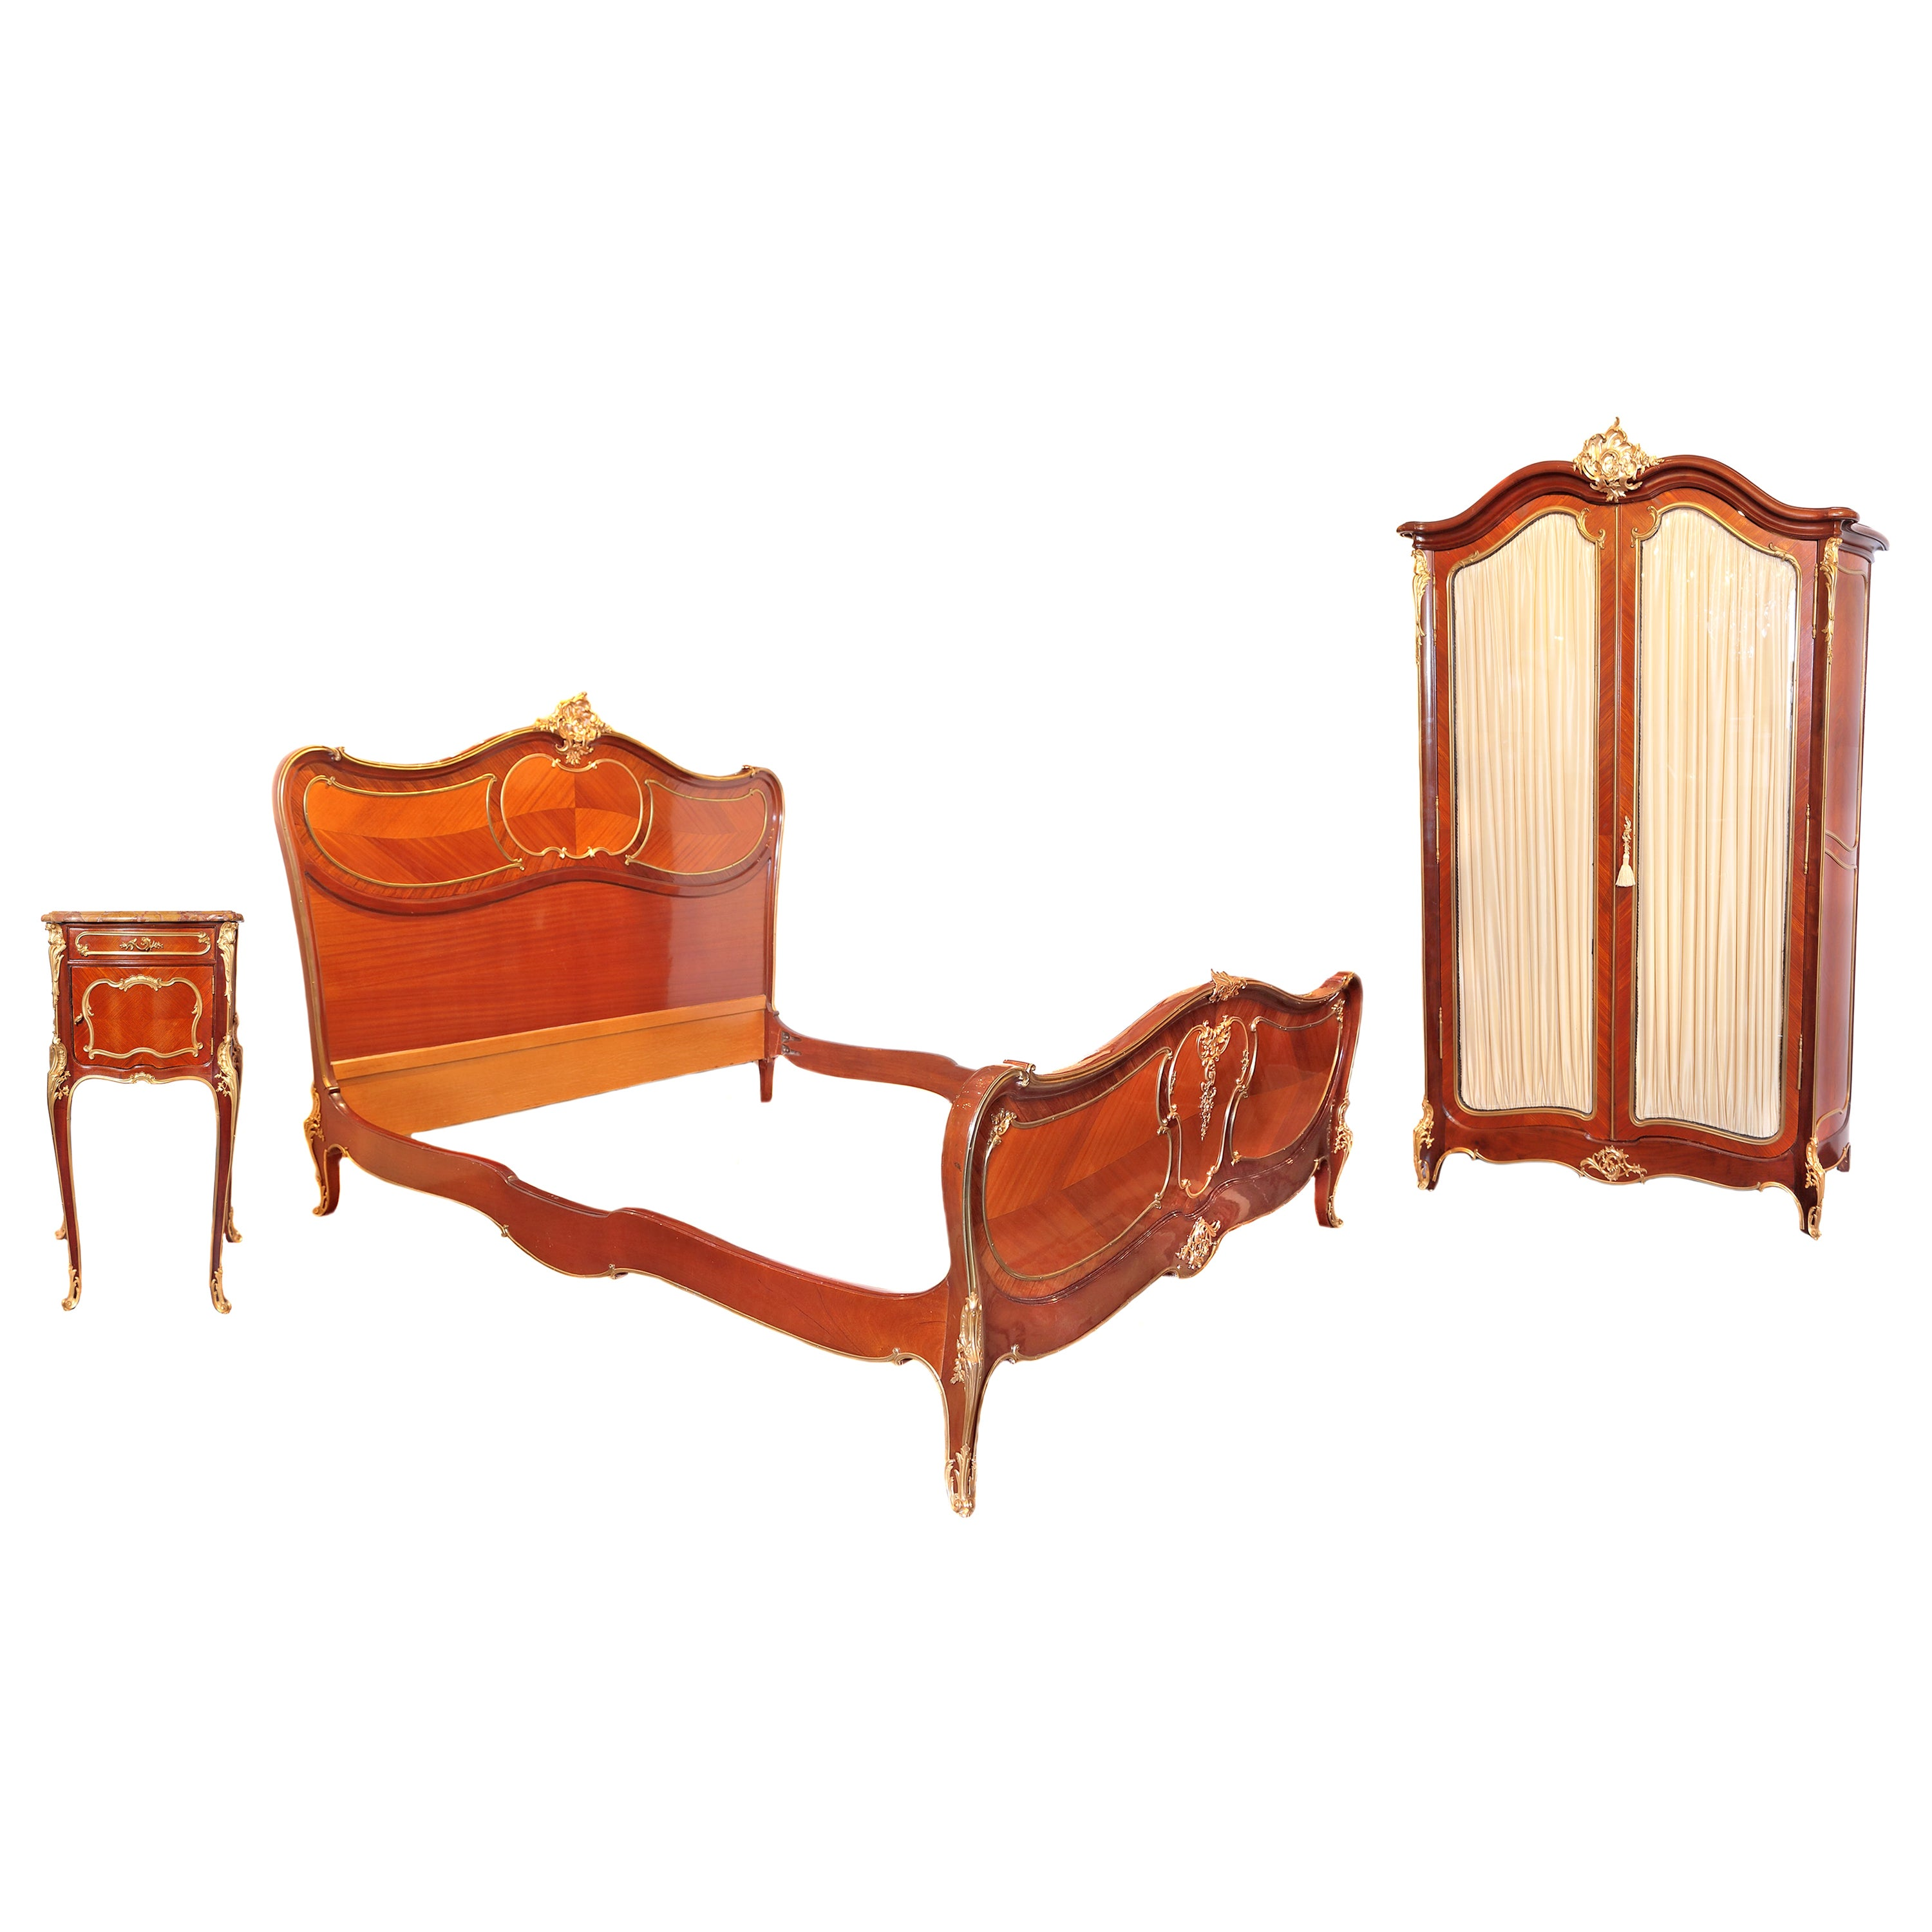 19th Century Signed Francois Linke King Bedroom Suite